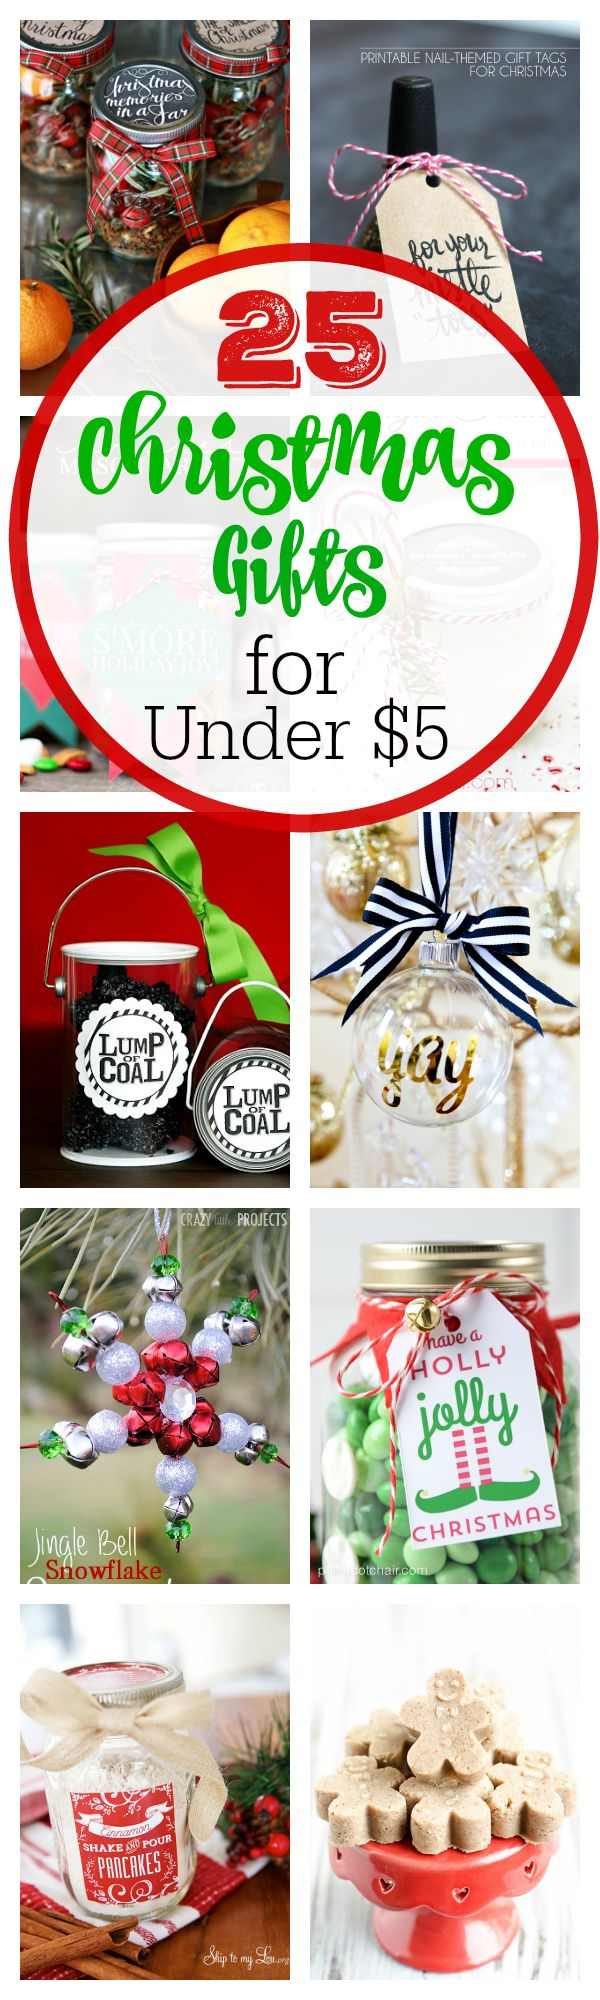 Tweet Pin It Last year I shared a post with 25 Creative Gift Ideas for under $10 and it was a HUGE hit! So let's just get totally crazy this year and find some that are $5 that I can share with you! These are perfect if you are wanting to do a bunch of...Read More »